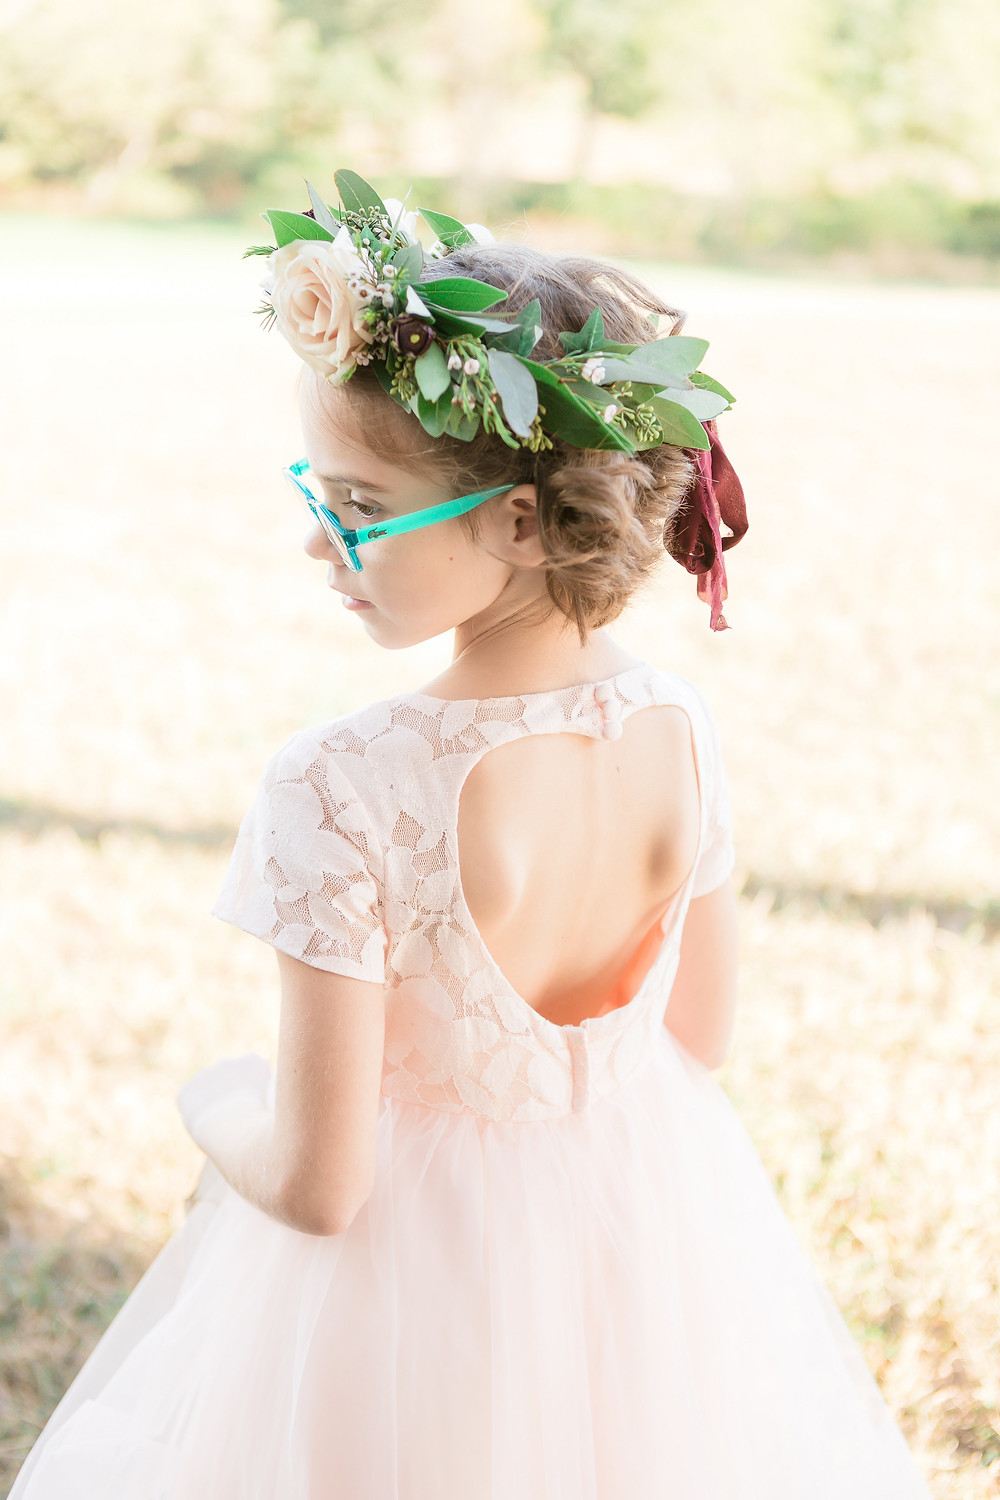 flower girl with flower crown wearing blush dress and aqua lacoste glasses